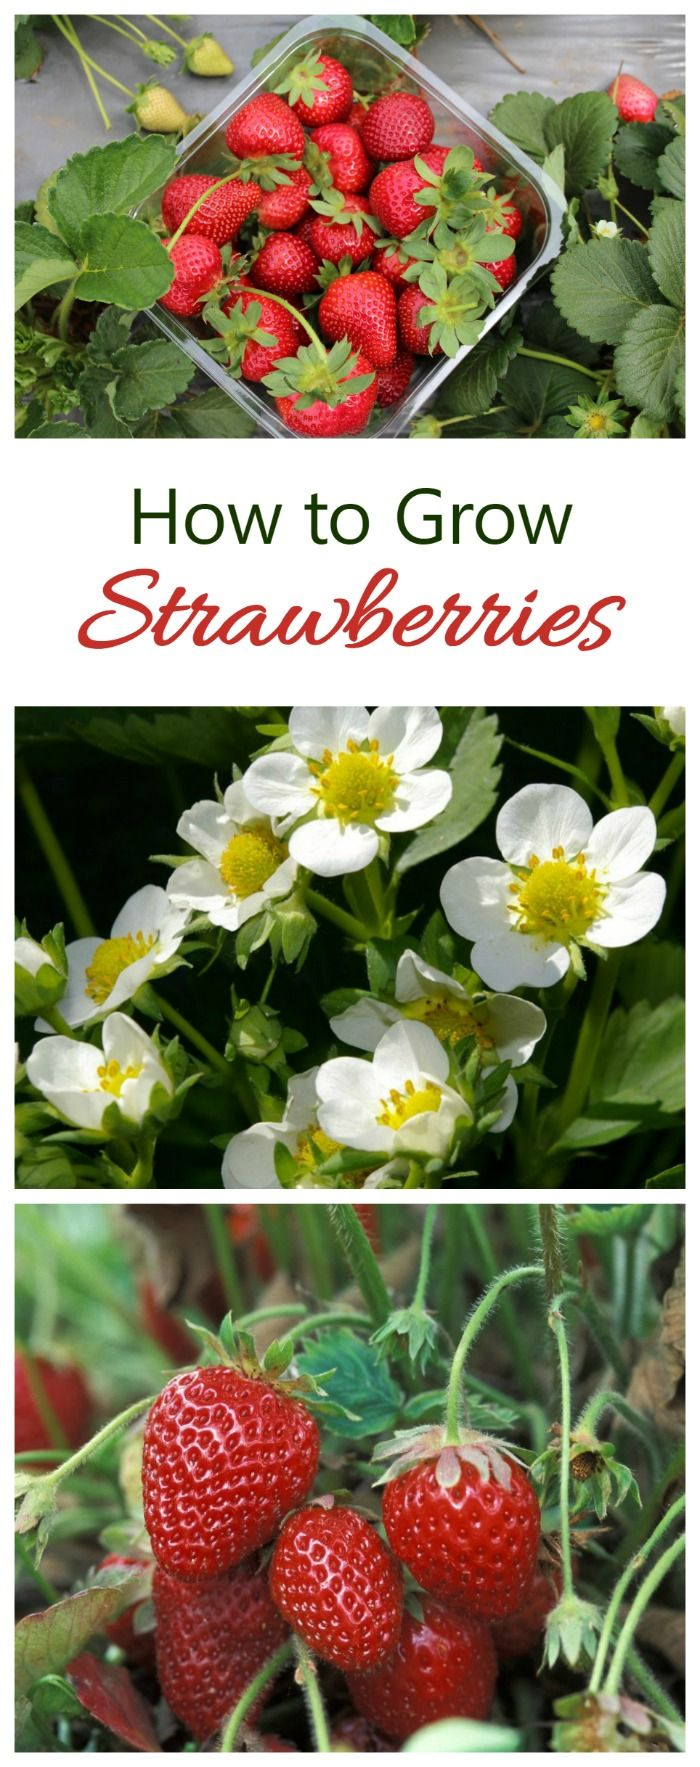 Growing Strawberries -Tips and Tricks for Best Success -   21 container garden strawberries ideas